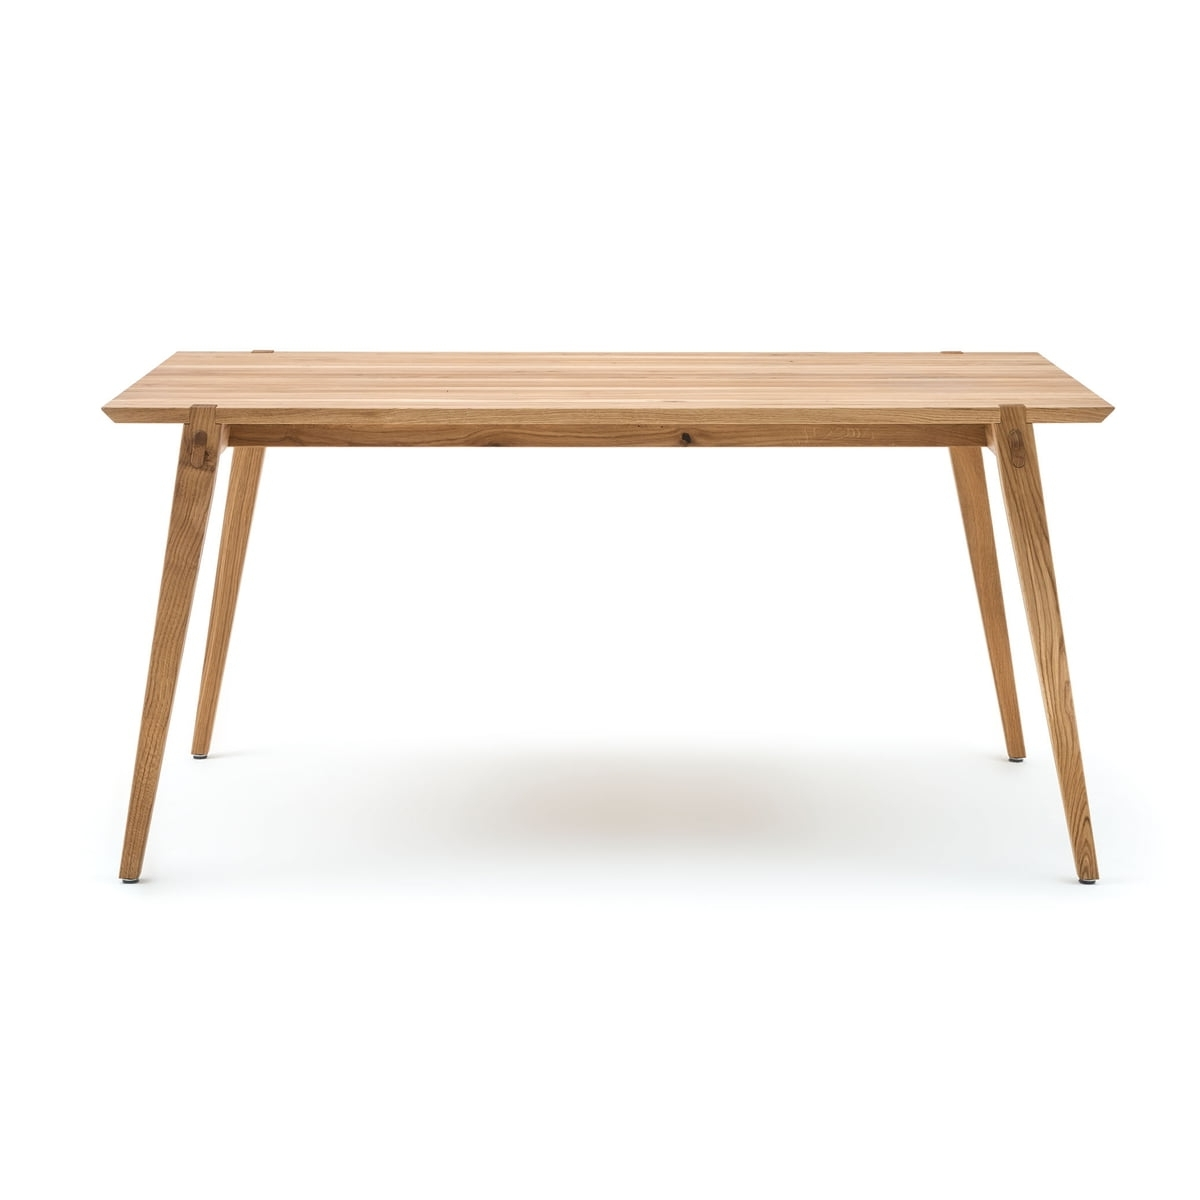 Popular Oak Dining Furniture Inside Freistil – 156 Esstisch, 160 X 84 Cm, Eiche Natur (View 20 of 25)